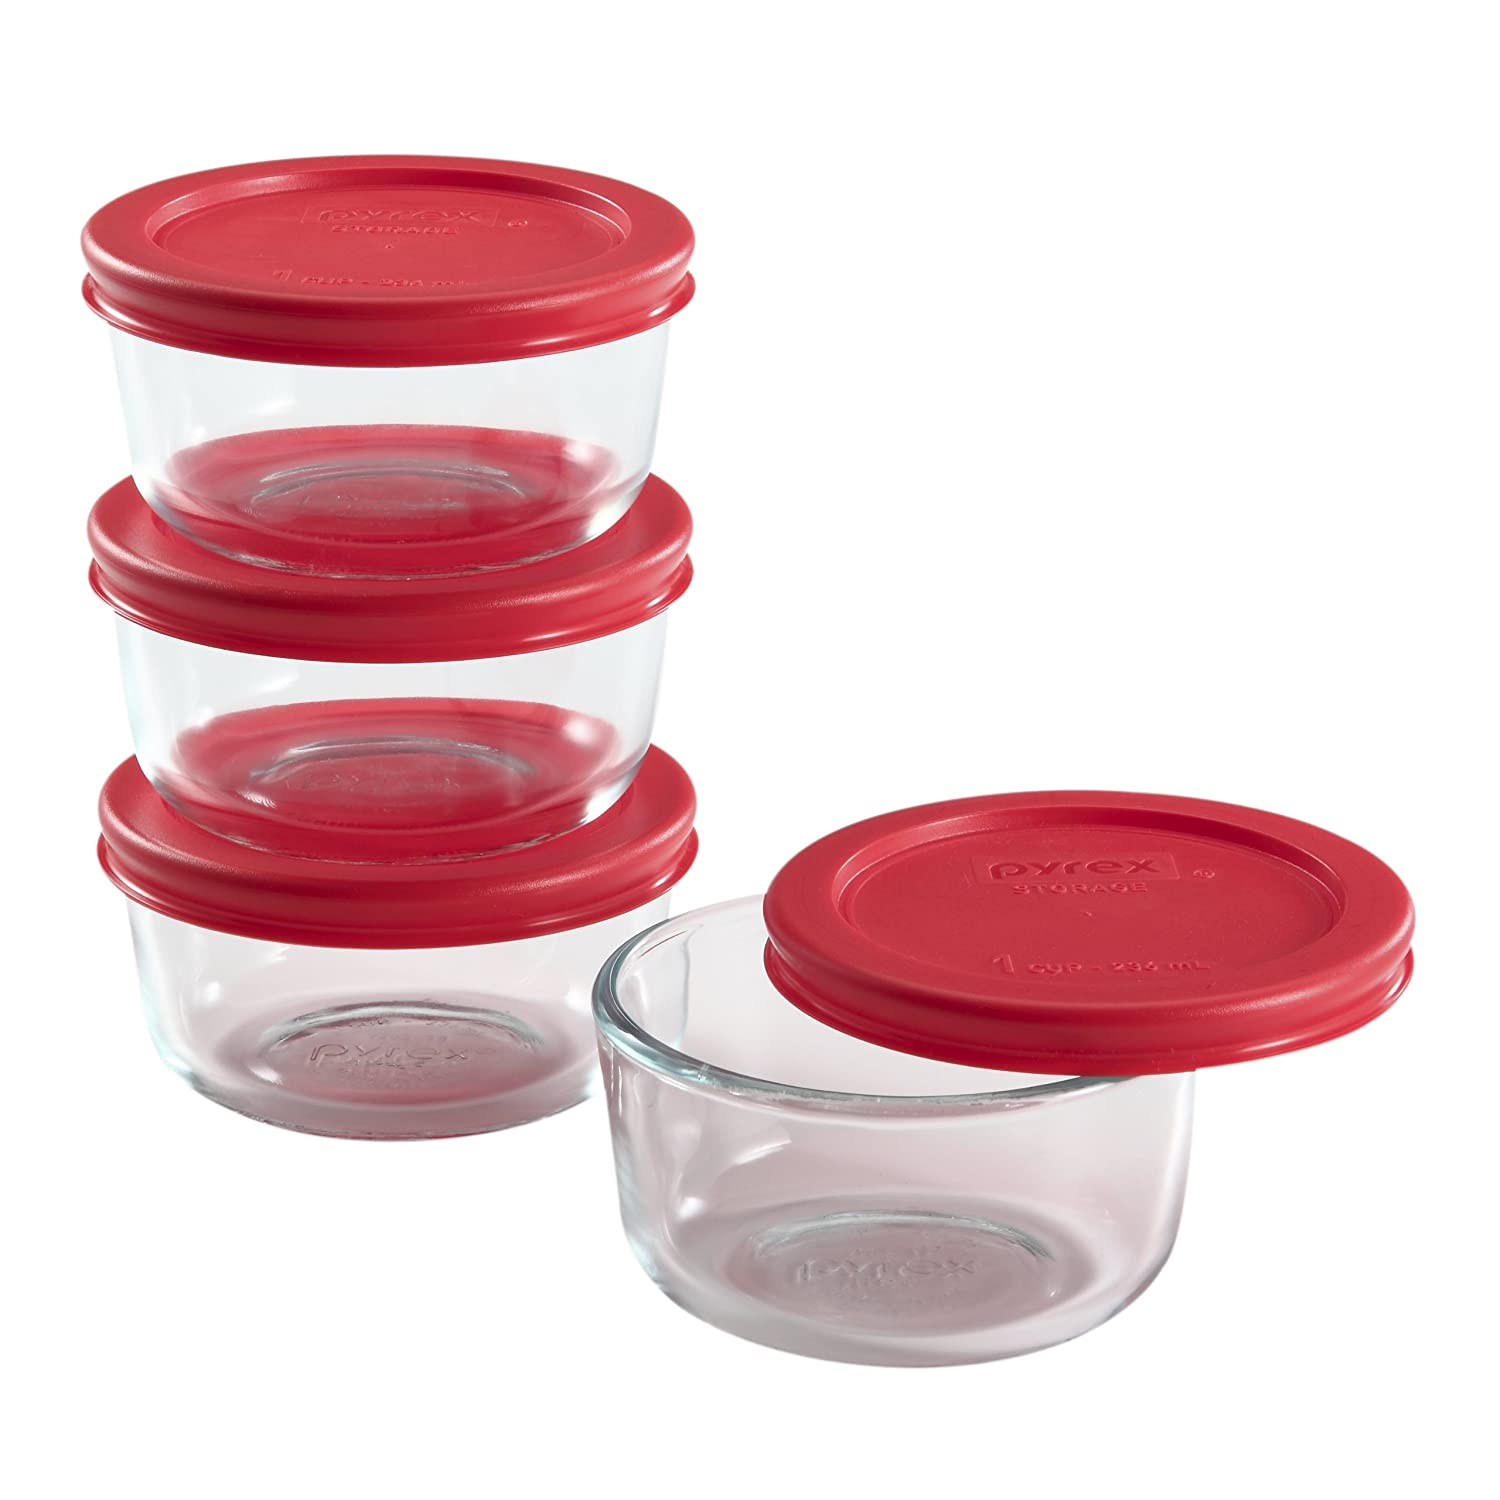 Amazon.com Pyrex Simply Store 8-Piece Glass Food Storage Set (4 vessels and 4 lids) Pyrex Glass Storage Containers With Lids Kitchen u0026 Dining  sc 1 st  Amazon.com : plastic storage cups  - Aquiesqueretaro.Com